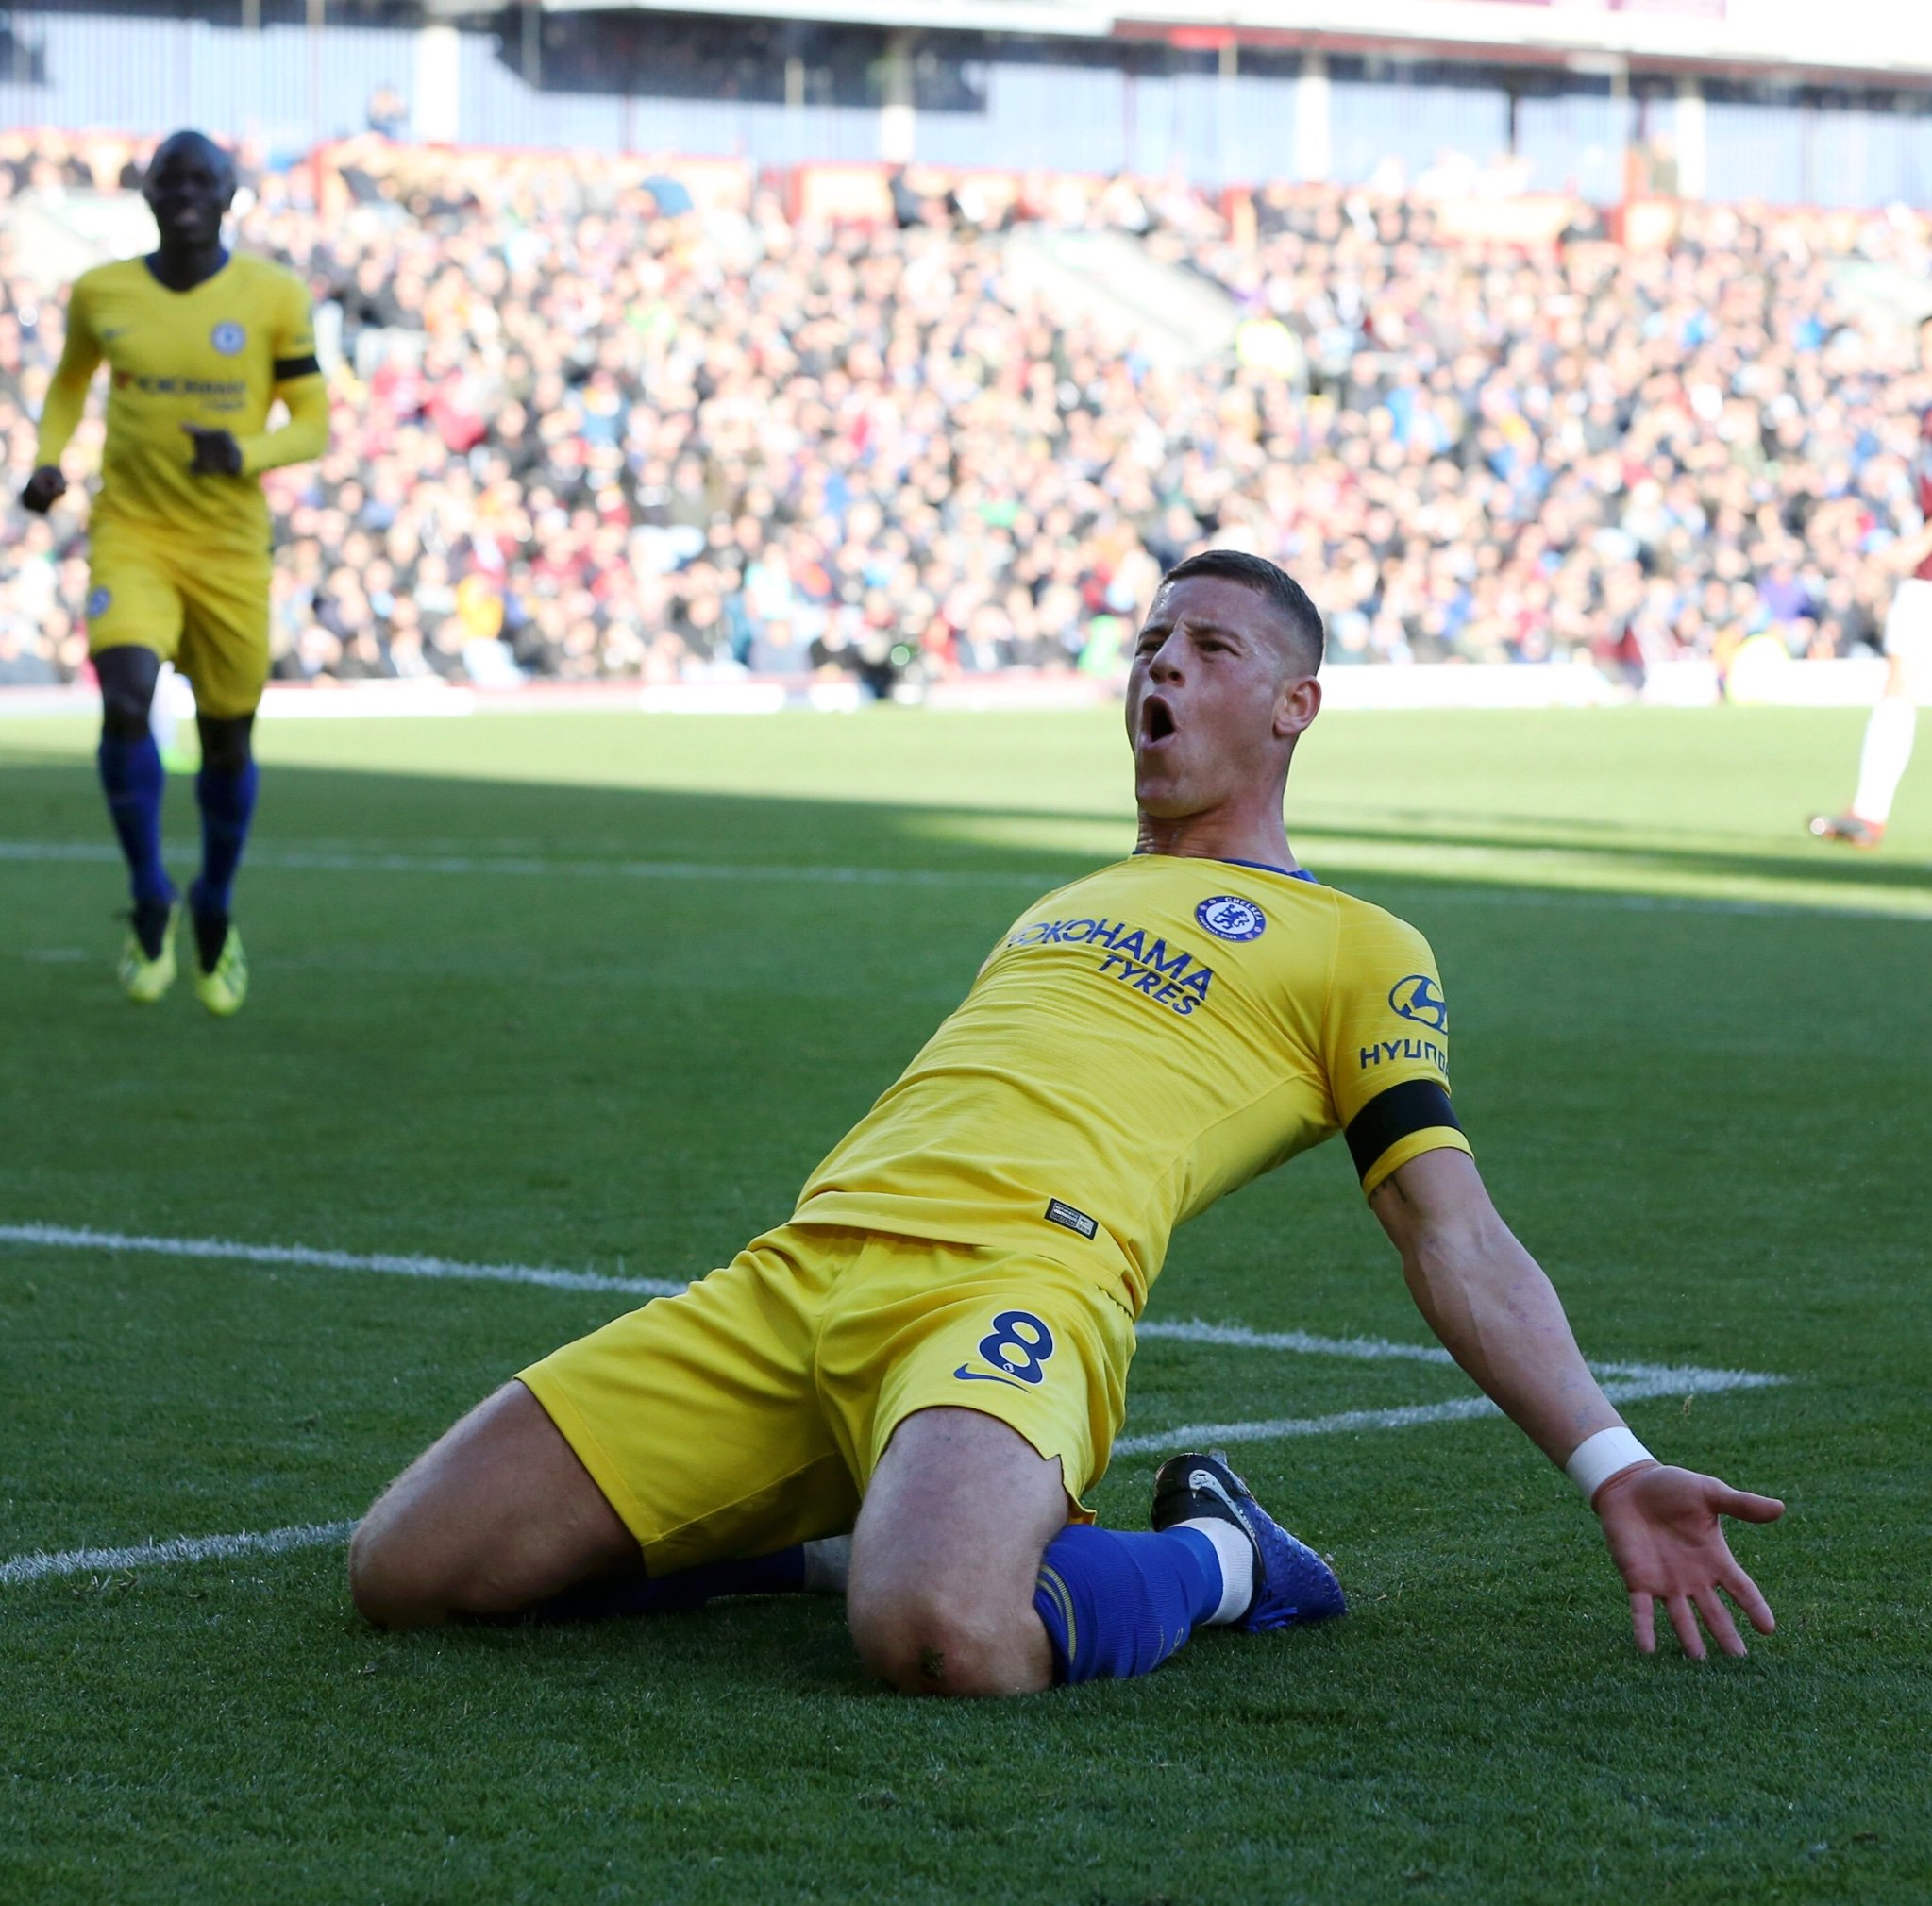 Chelsea Boy Barkley Expects Jeers From Everton Fans At Stamford Bridge